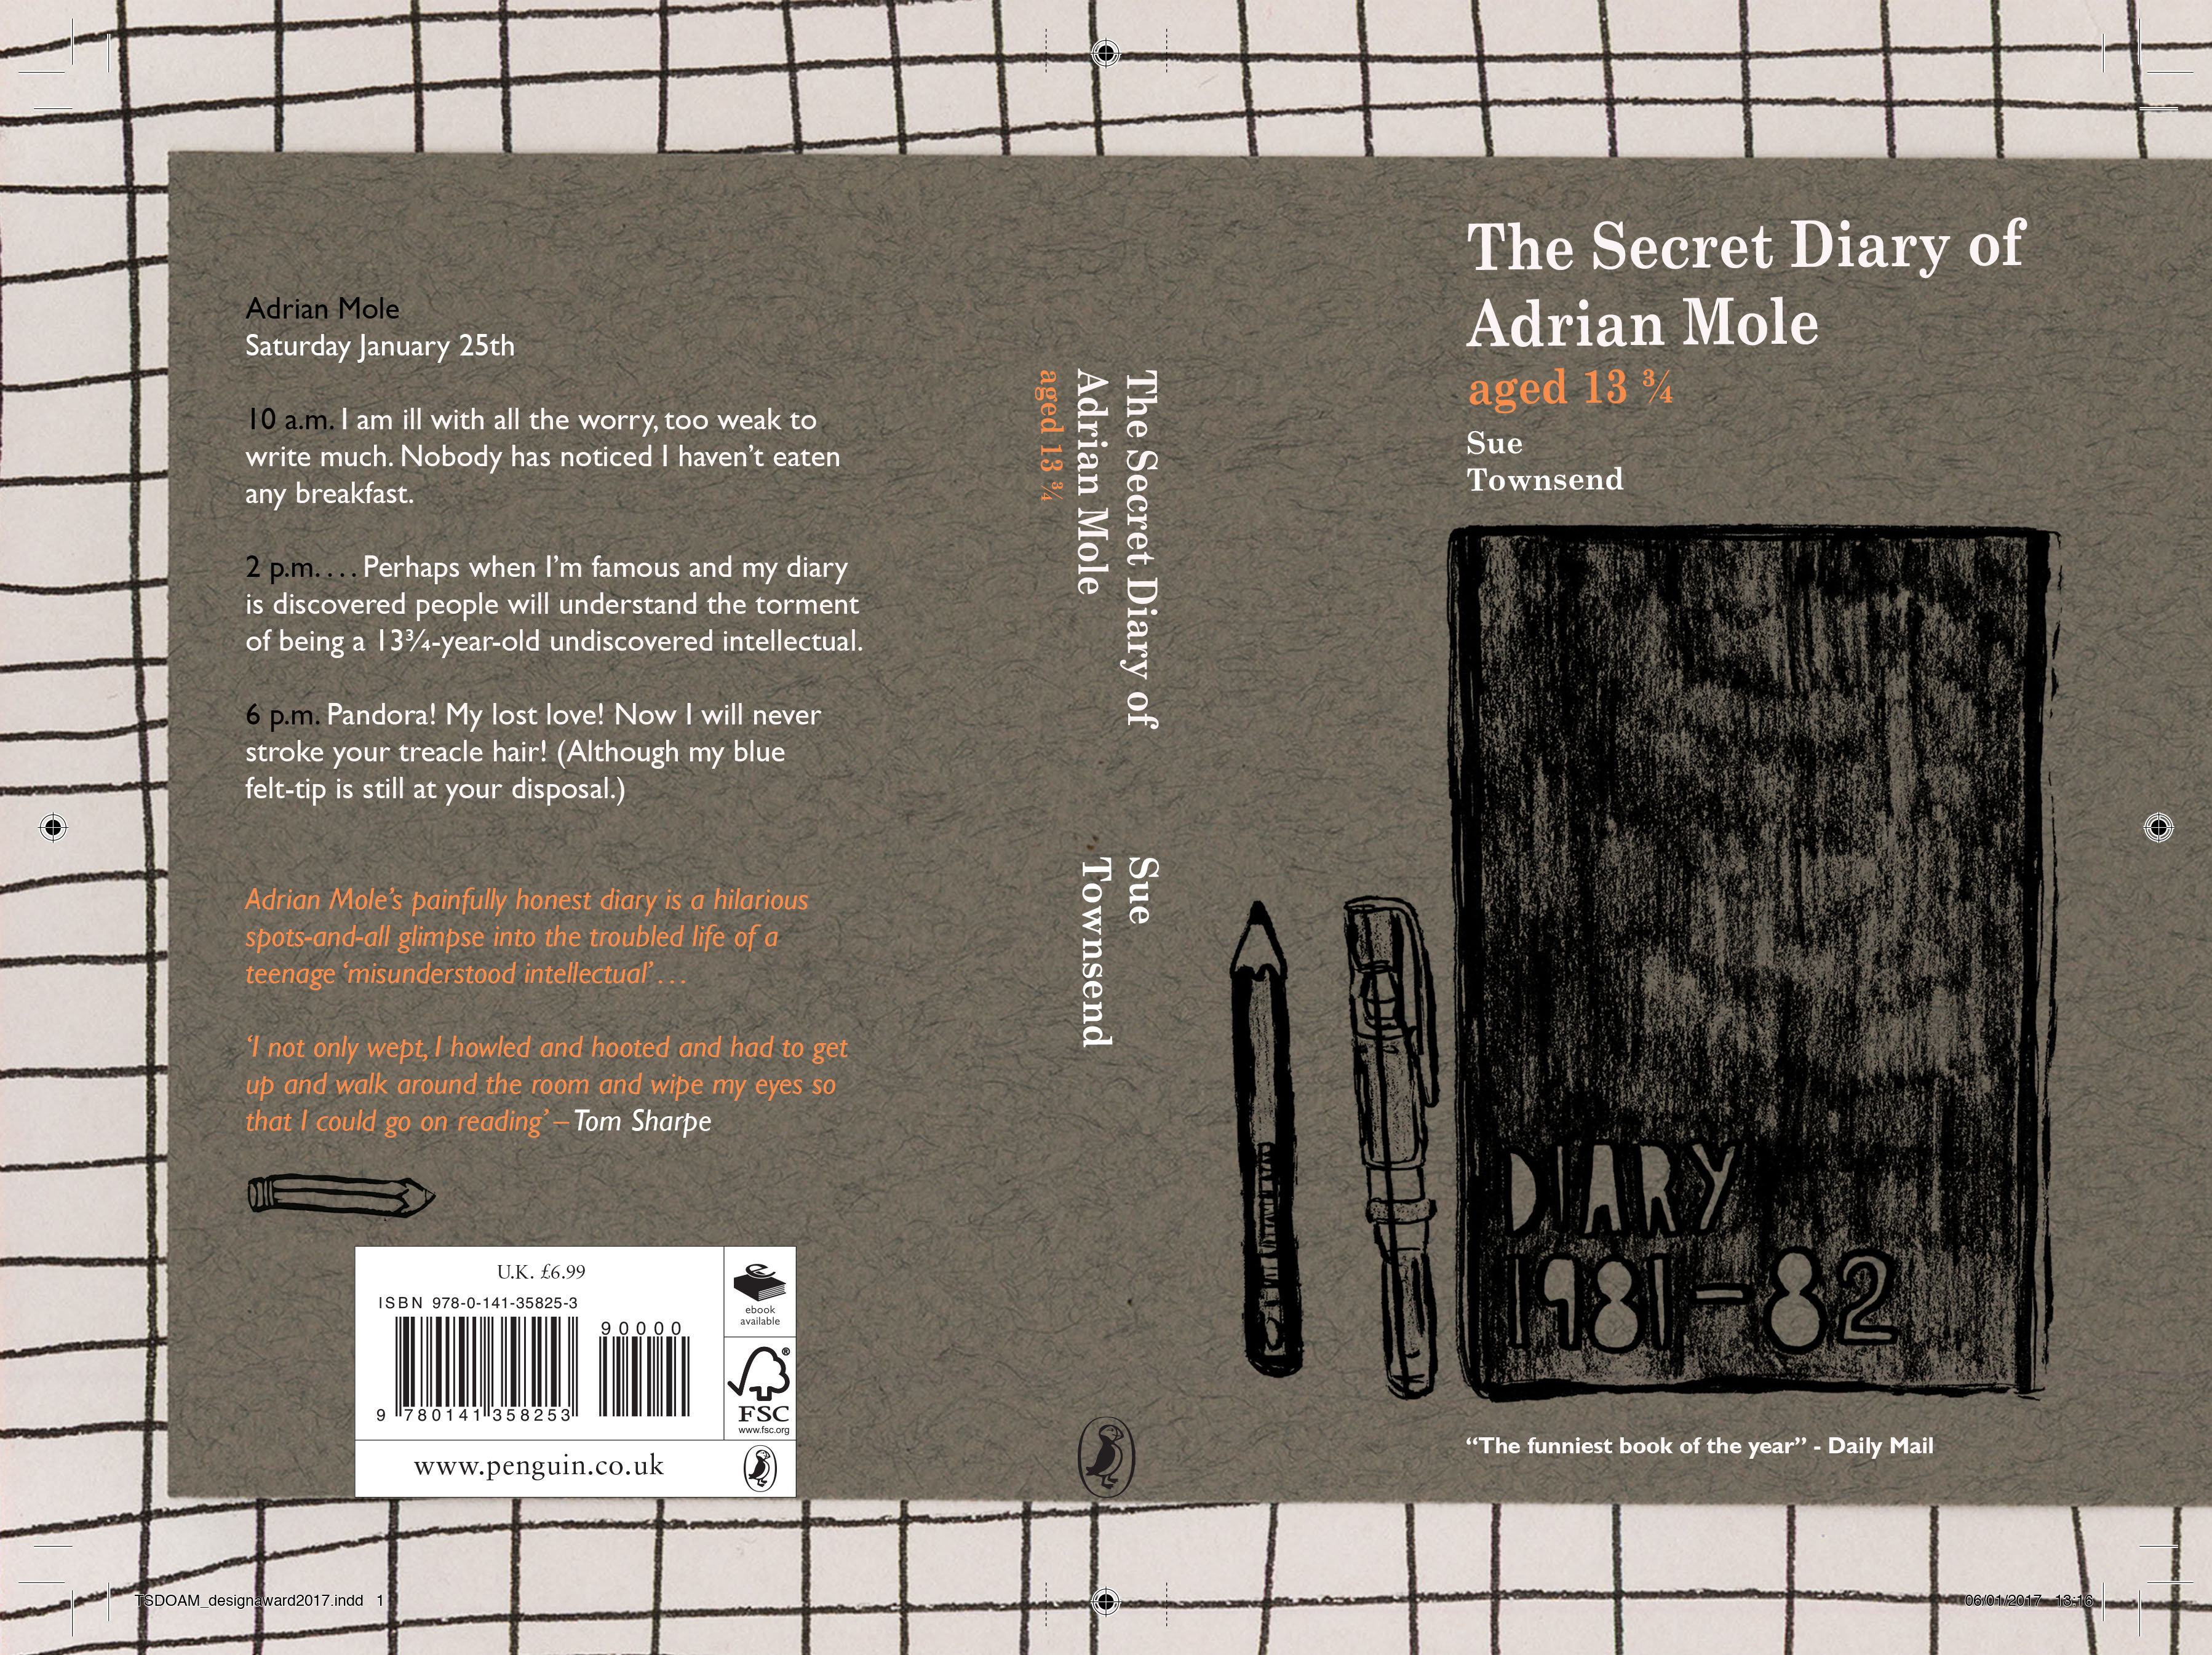 Adrian Mole Book cover 13 Grey and Orang